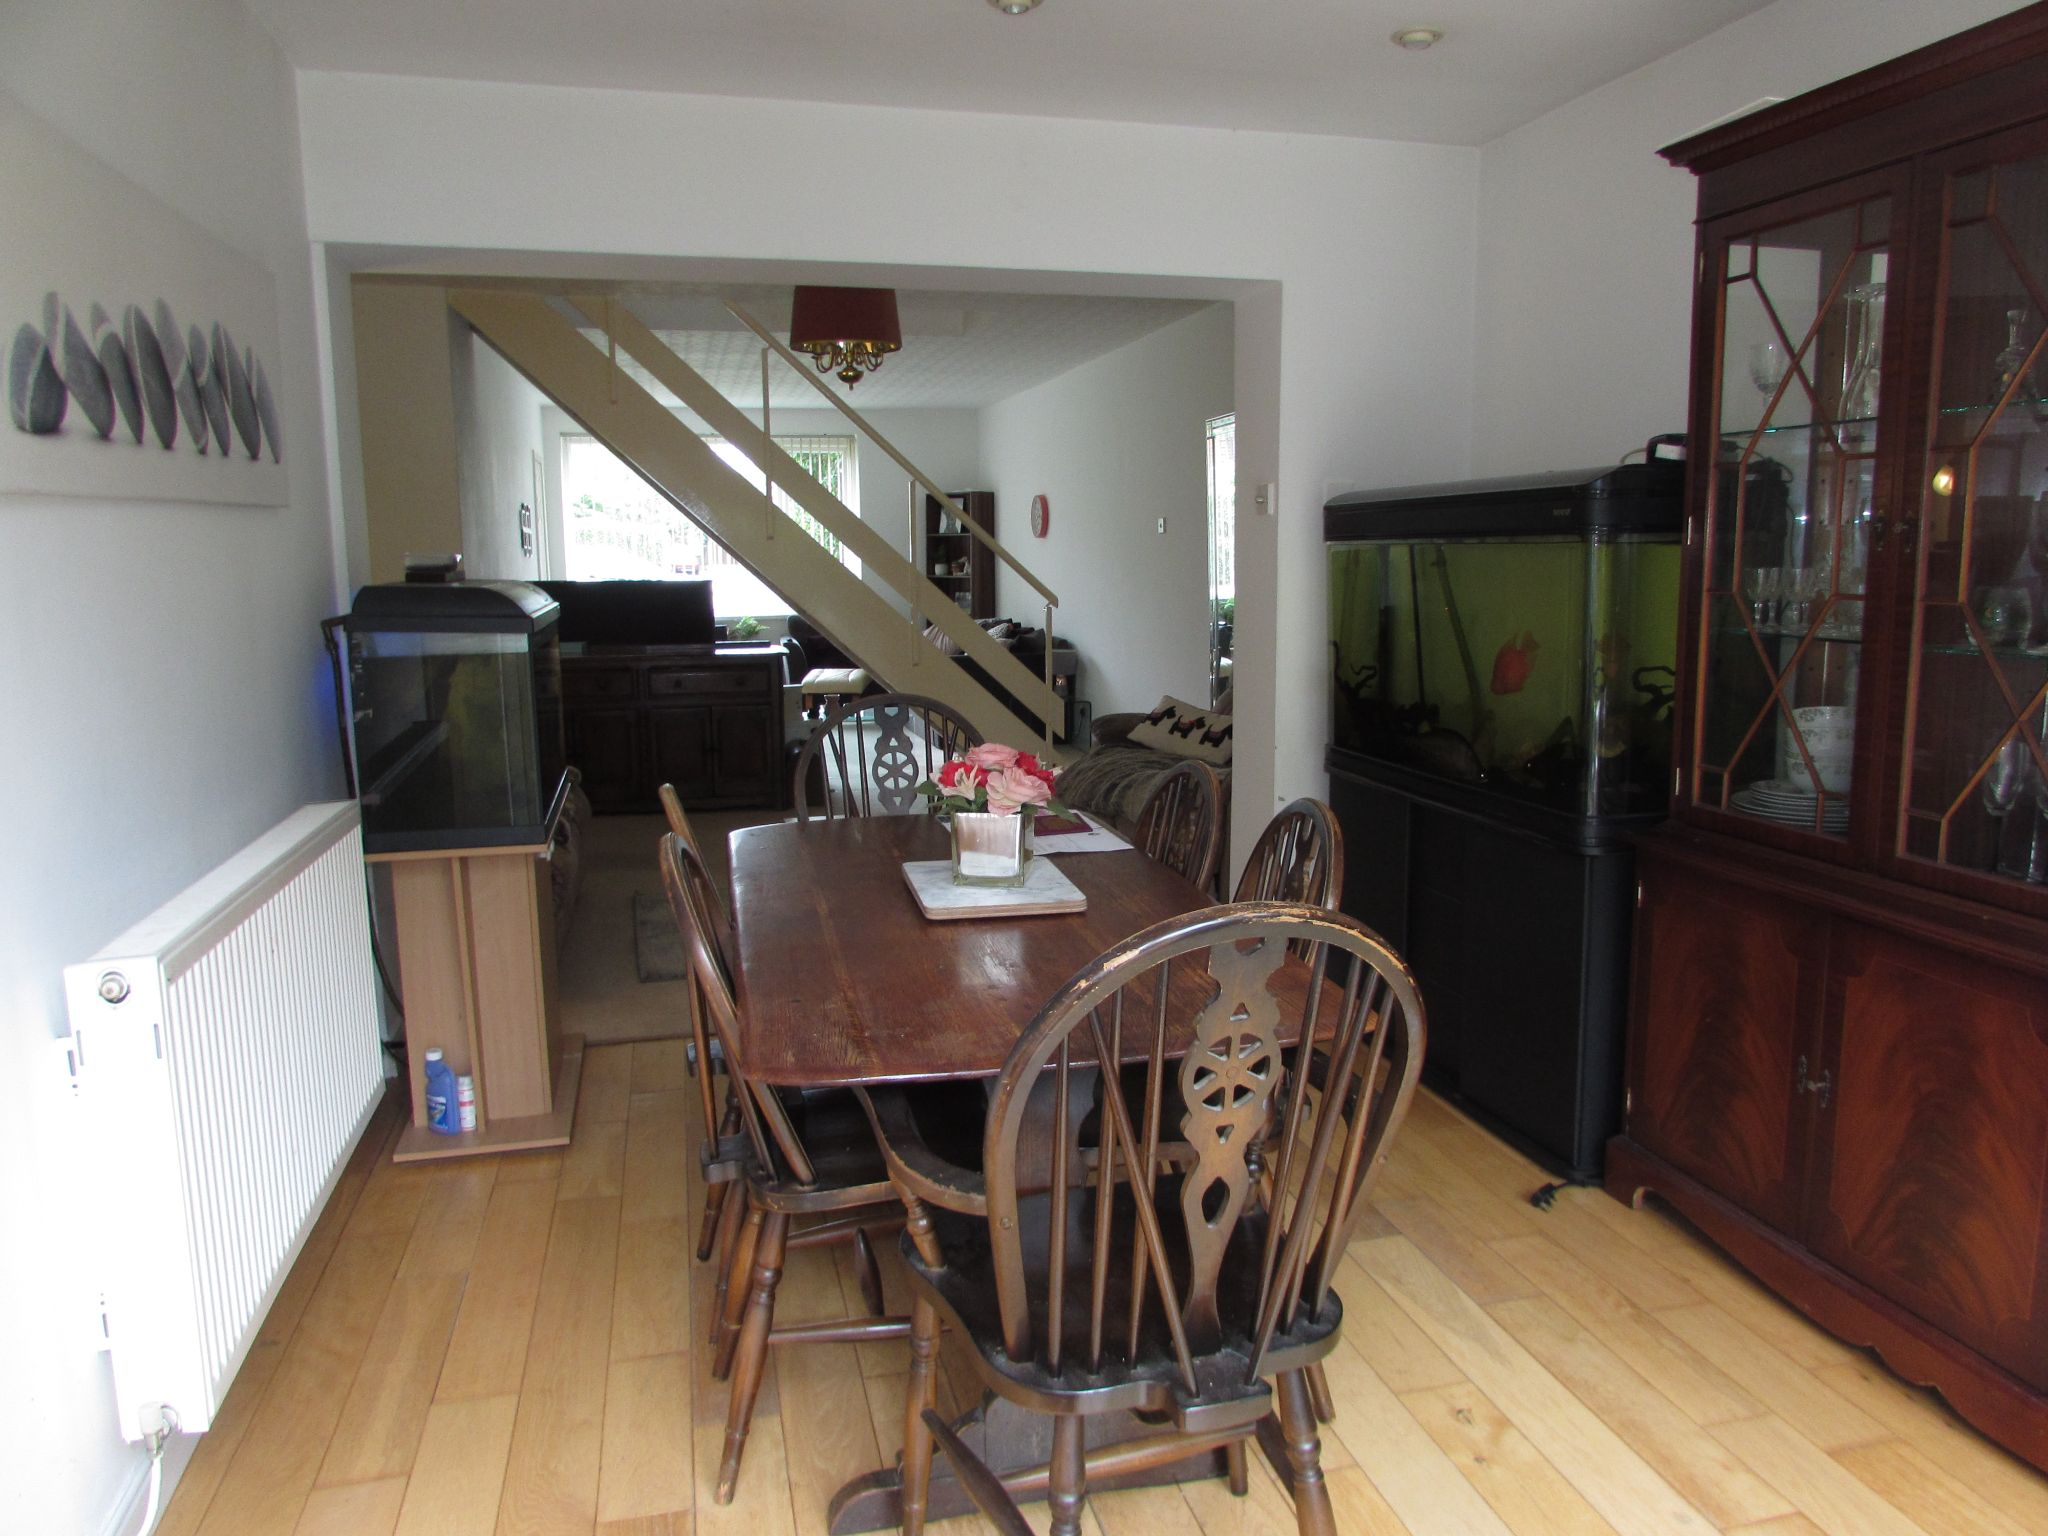 5 Bedroom Semi-detached House For Sale - Photograph 12